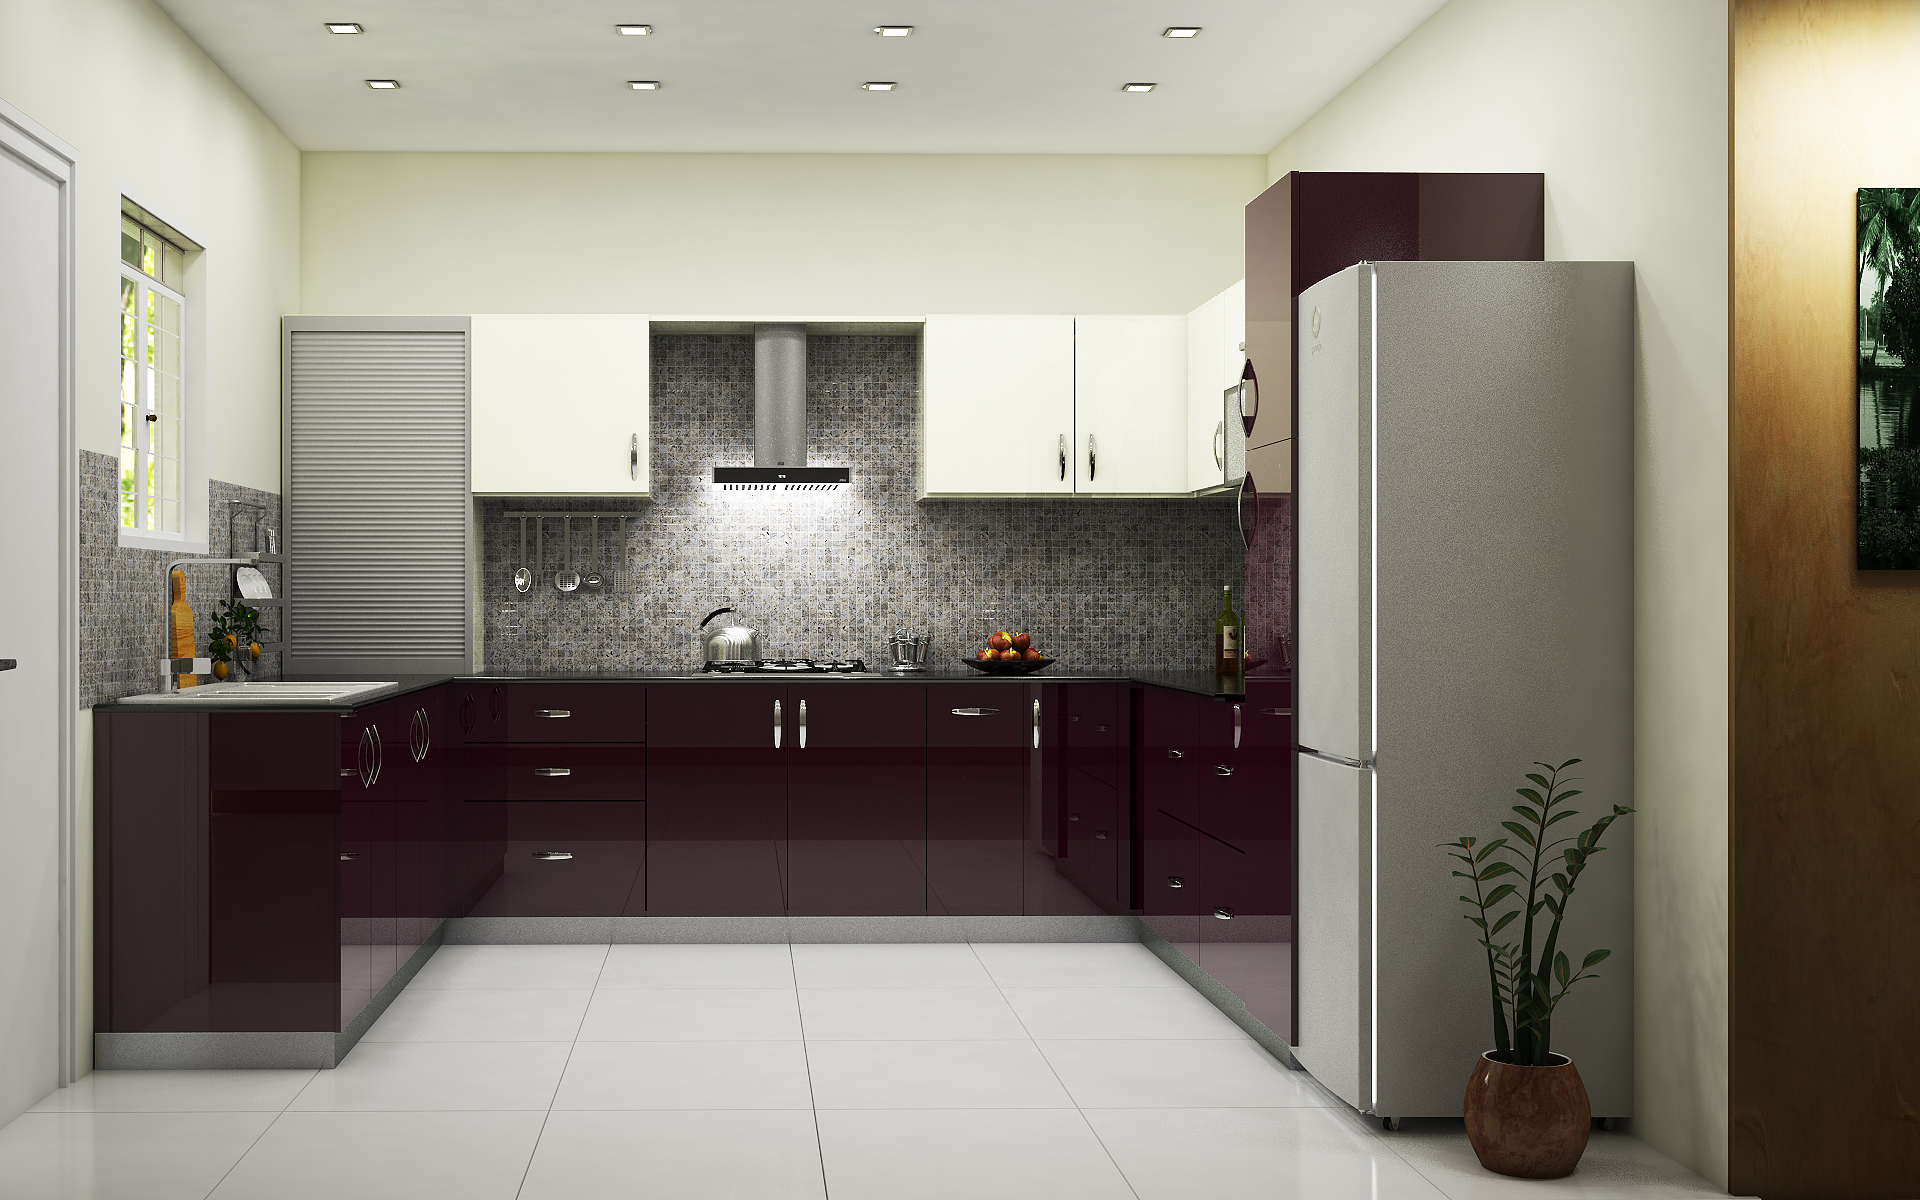 kitchen design price list in india for beautiful and designer kitchen select modular kitchen 362